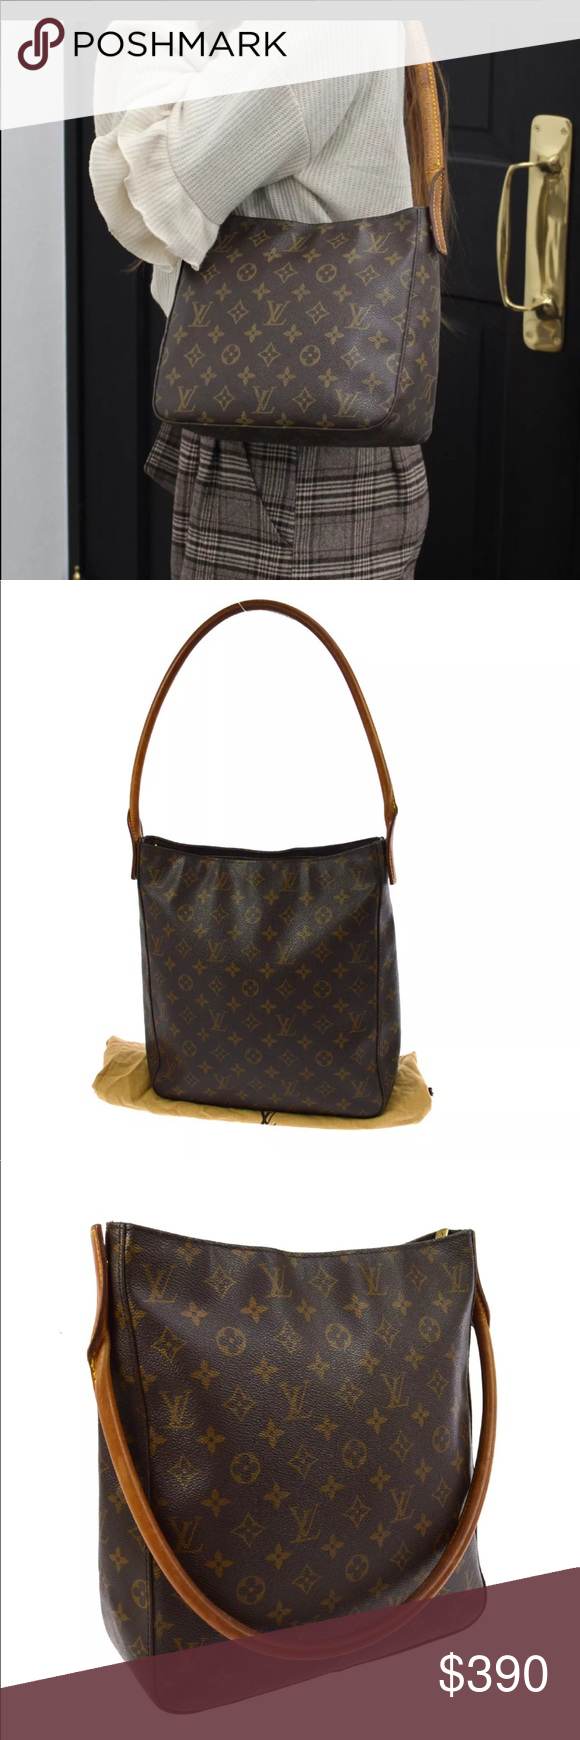 b1333eb55045d Authentic Louis Vuitton Looping GM Monogram This Louis Vuitton Monogram  Canvas Looping GM Bag has a